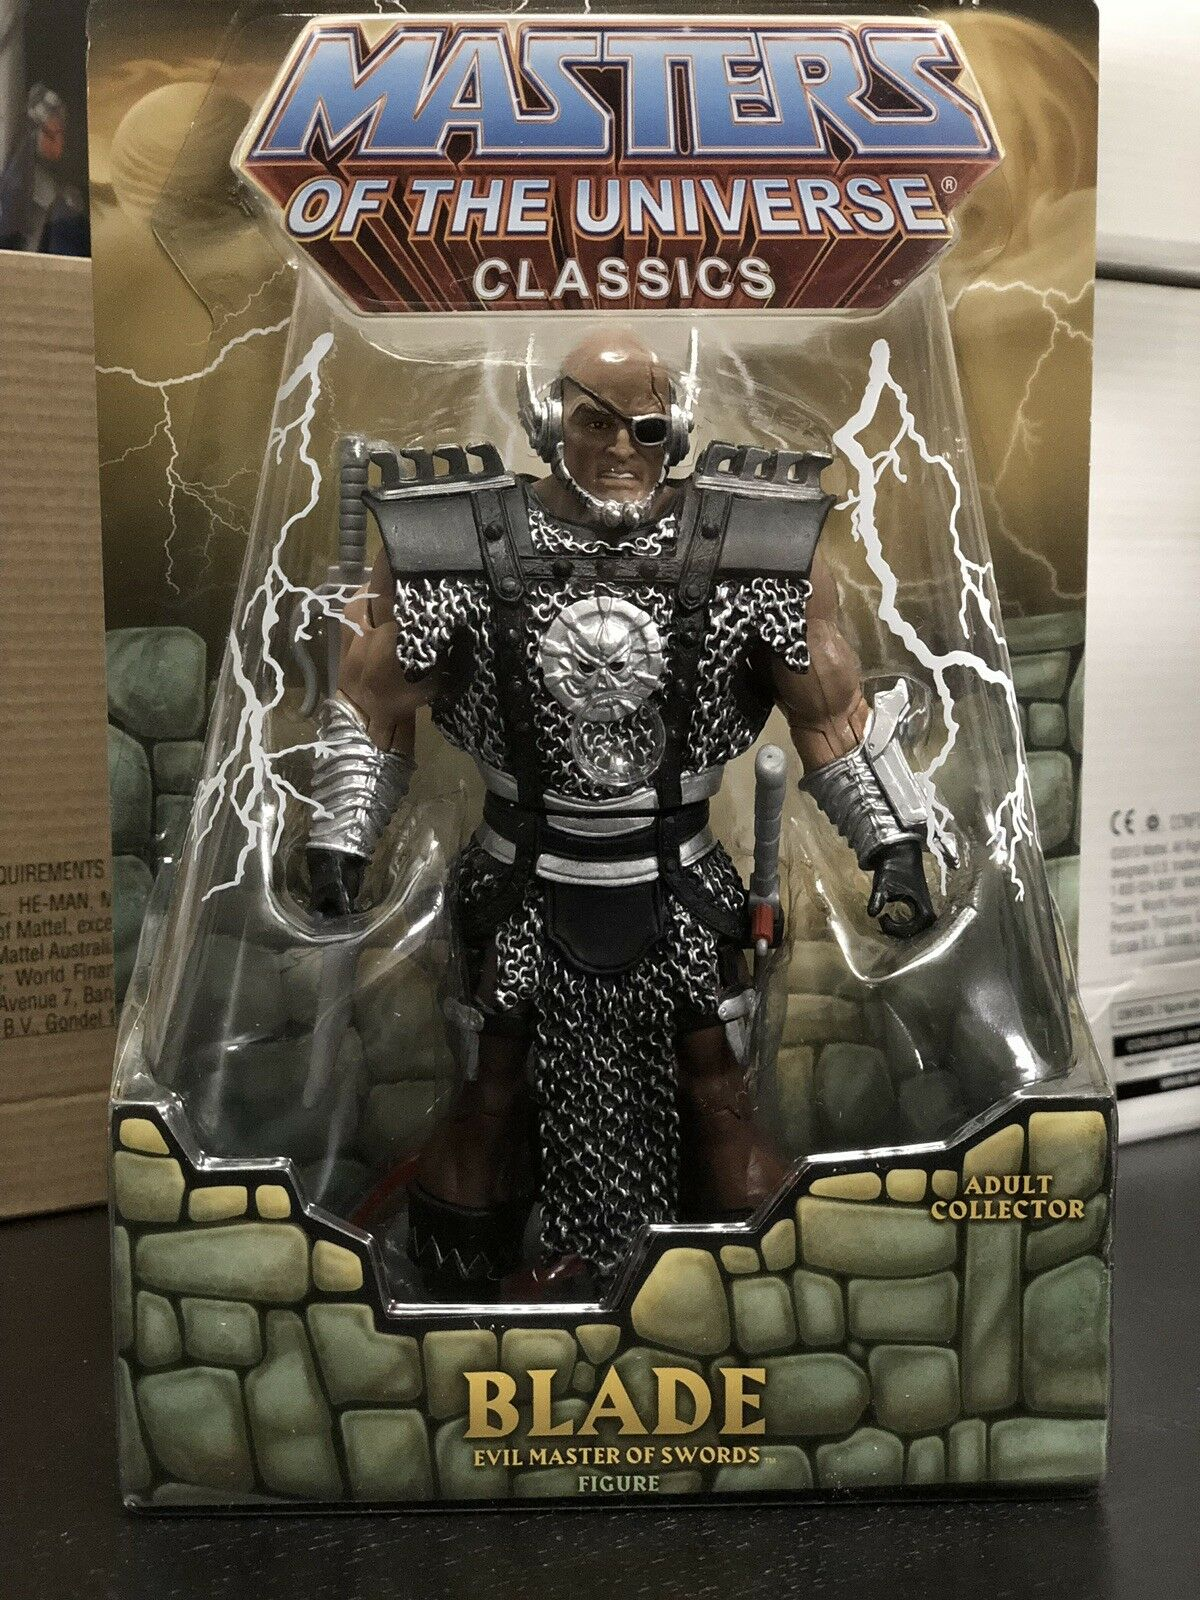 Htf SOLD OUT Motuc Matty BLADE With Mailer Masters Of The Universe NIB